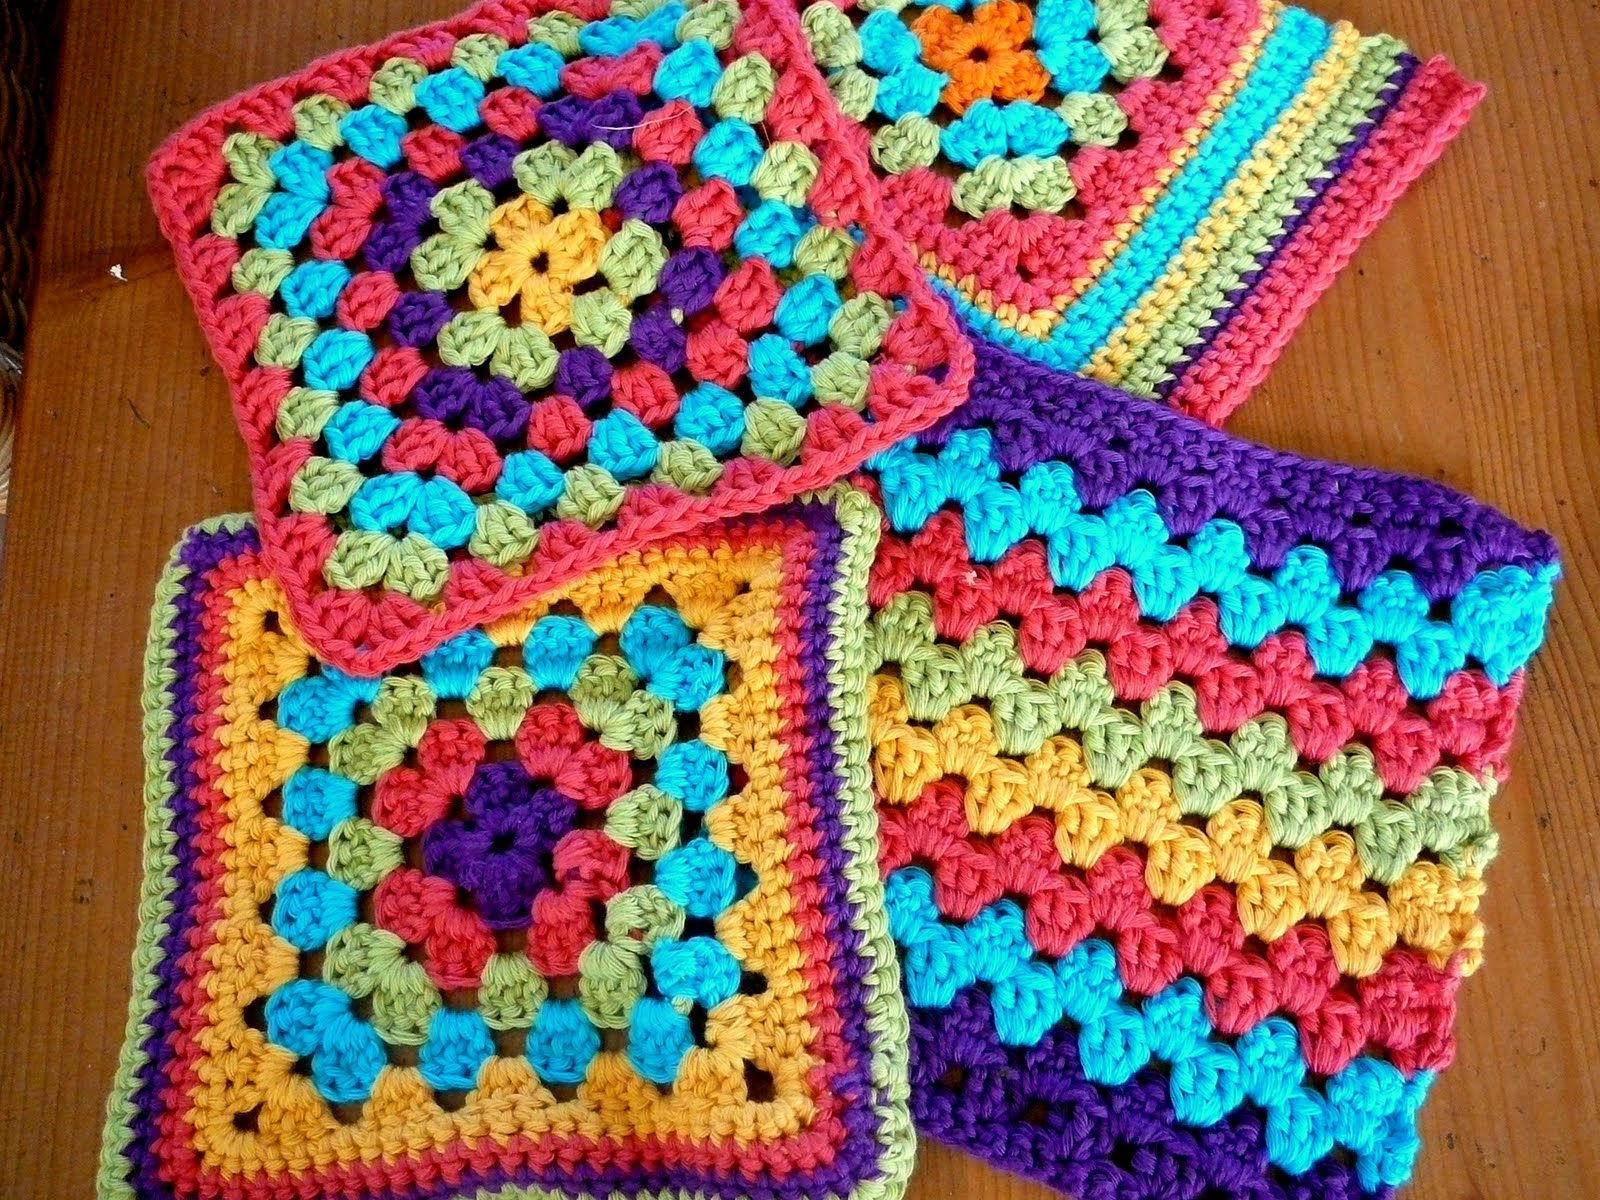 Crocheting Groups : Lindevrouwsweb: Dutch Crochet Group